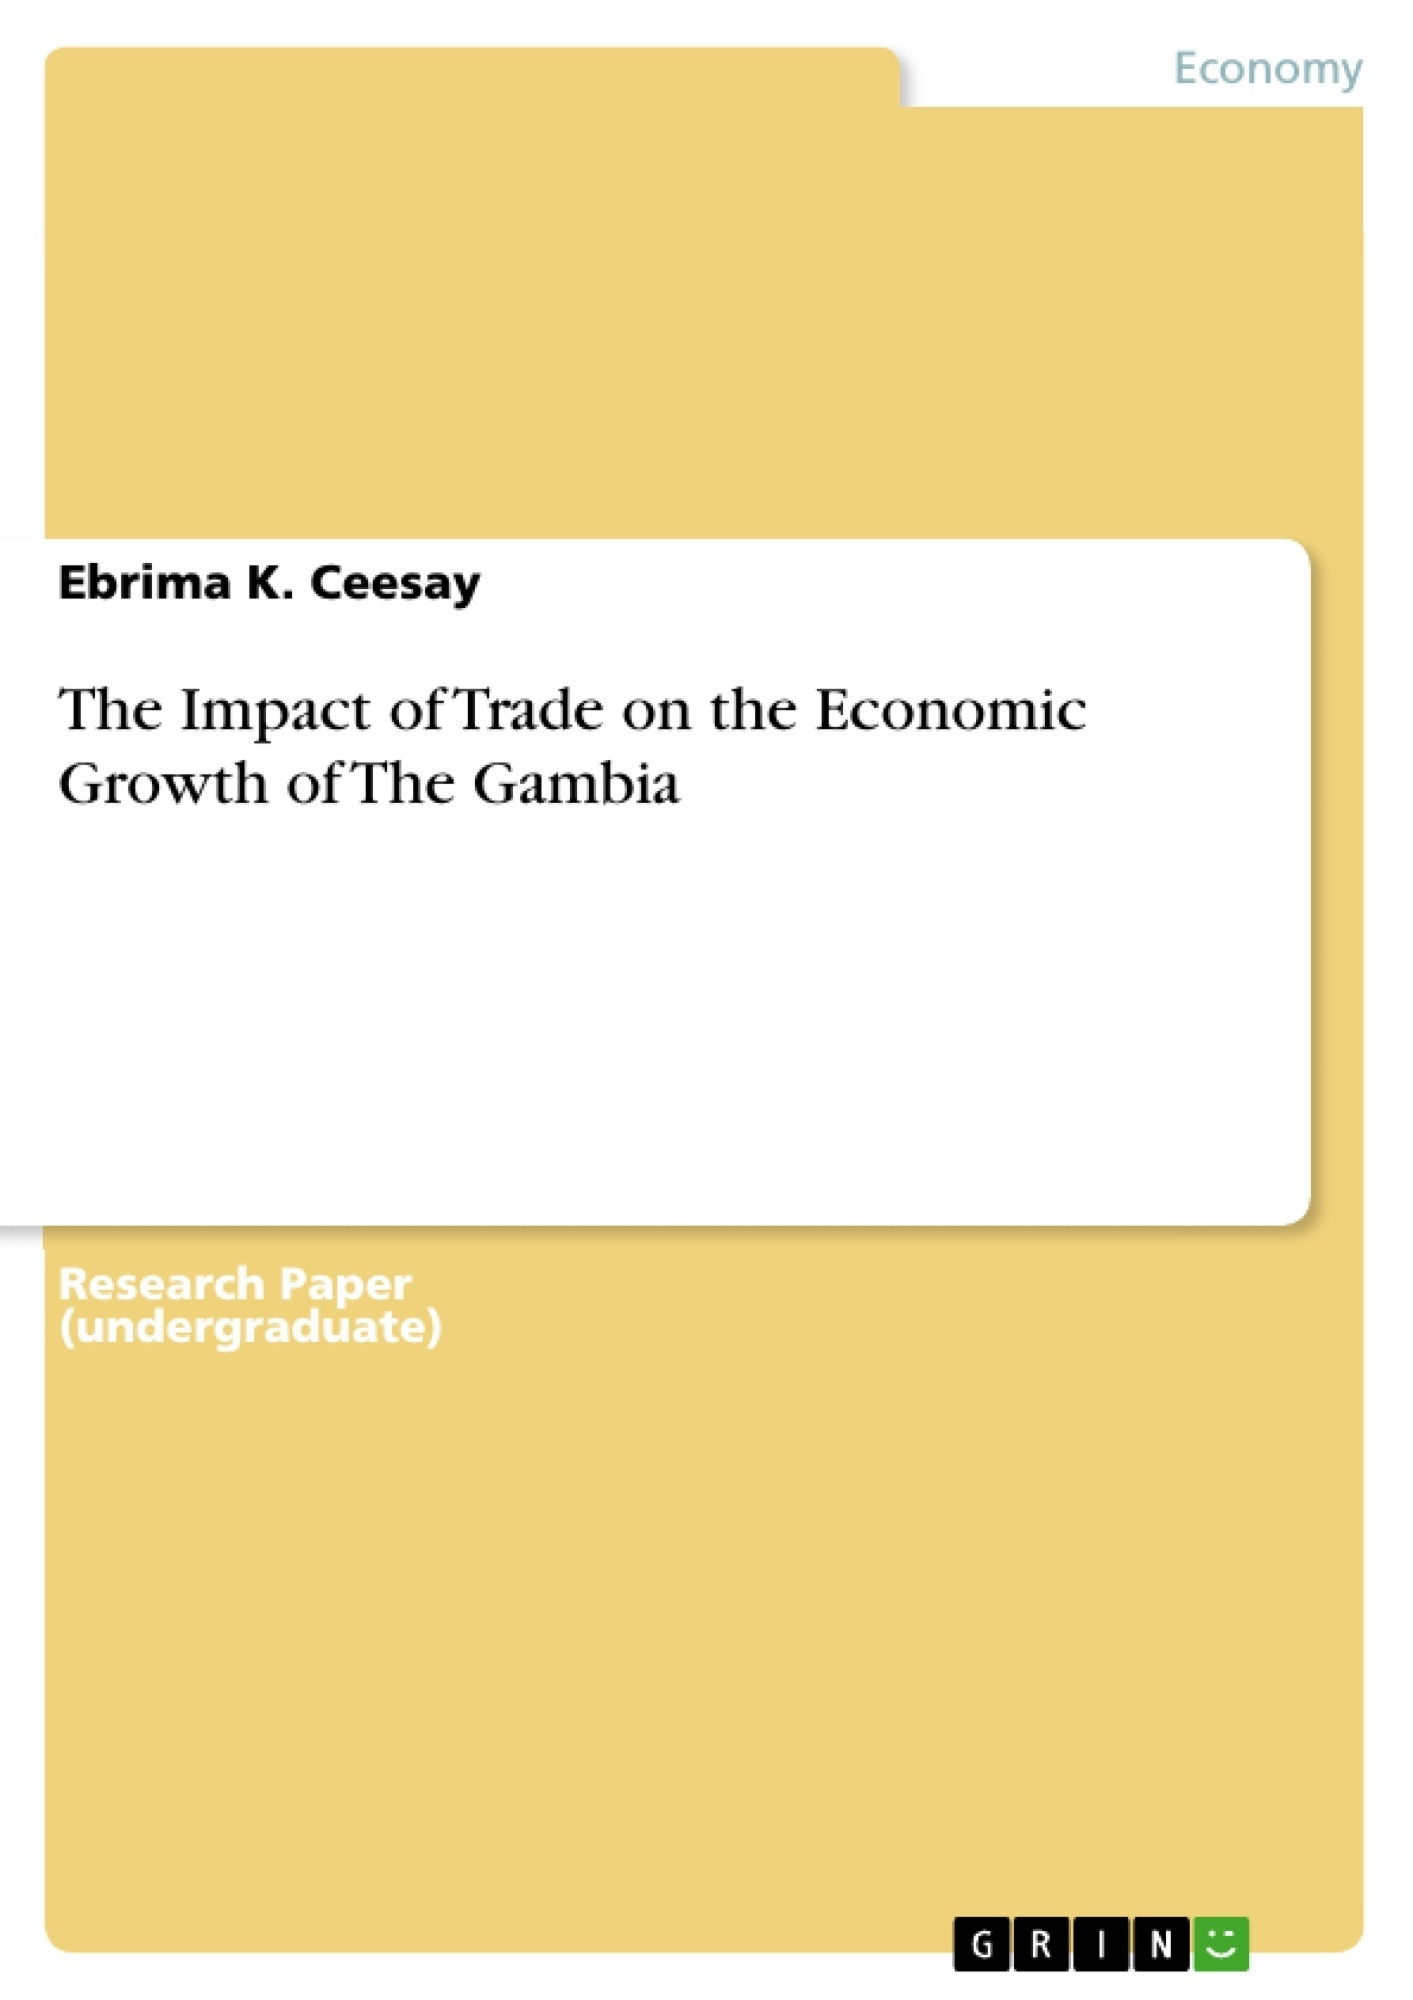 Title: The Impact of Trade on the Economic Growth of The Gambia